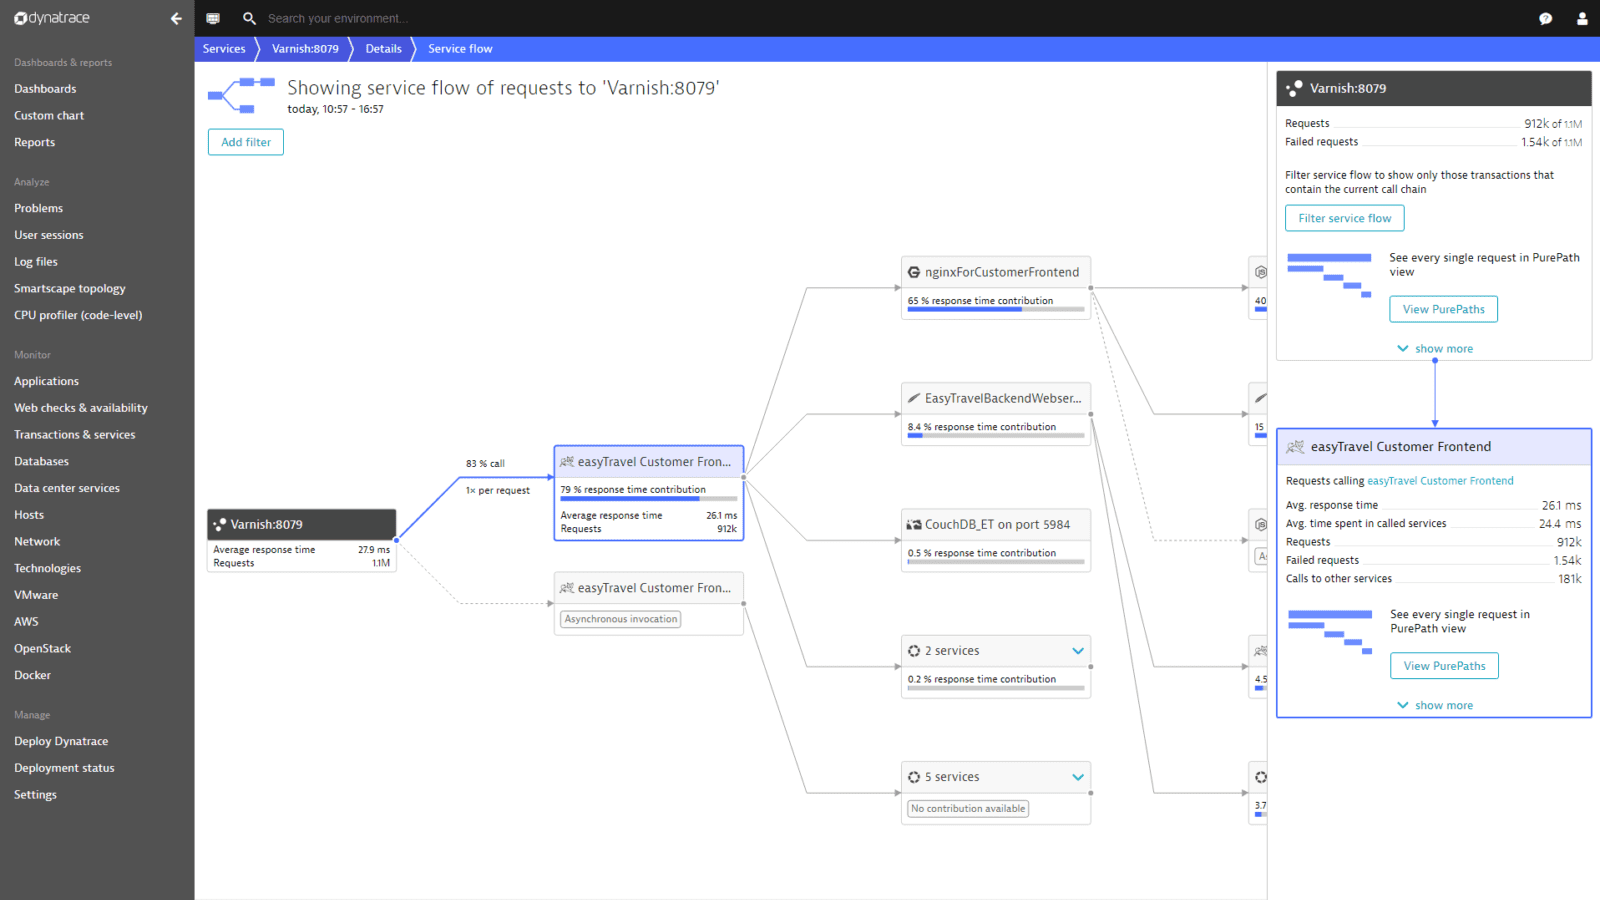 Get service-level insights of requests to Varnish with Service flow.